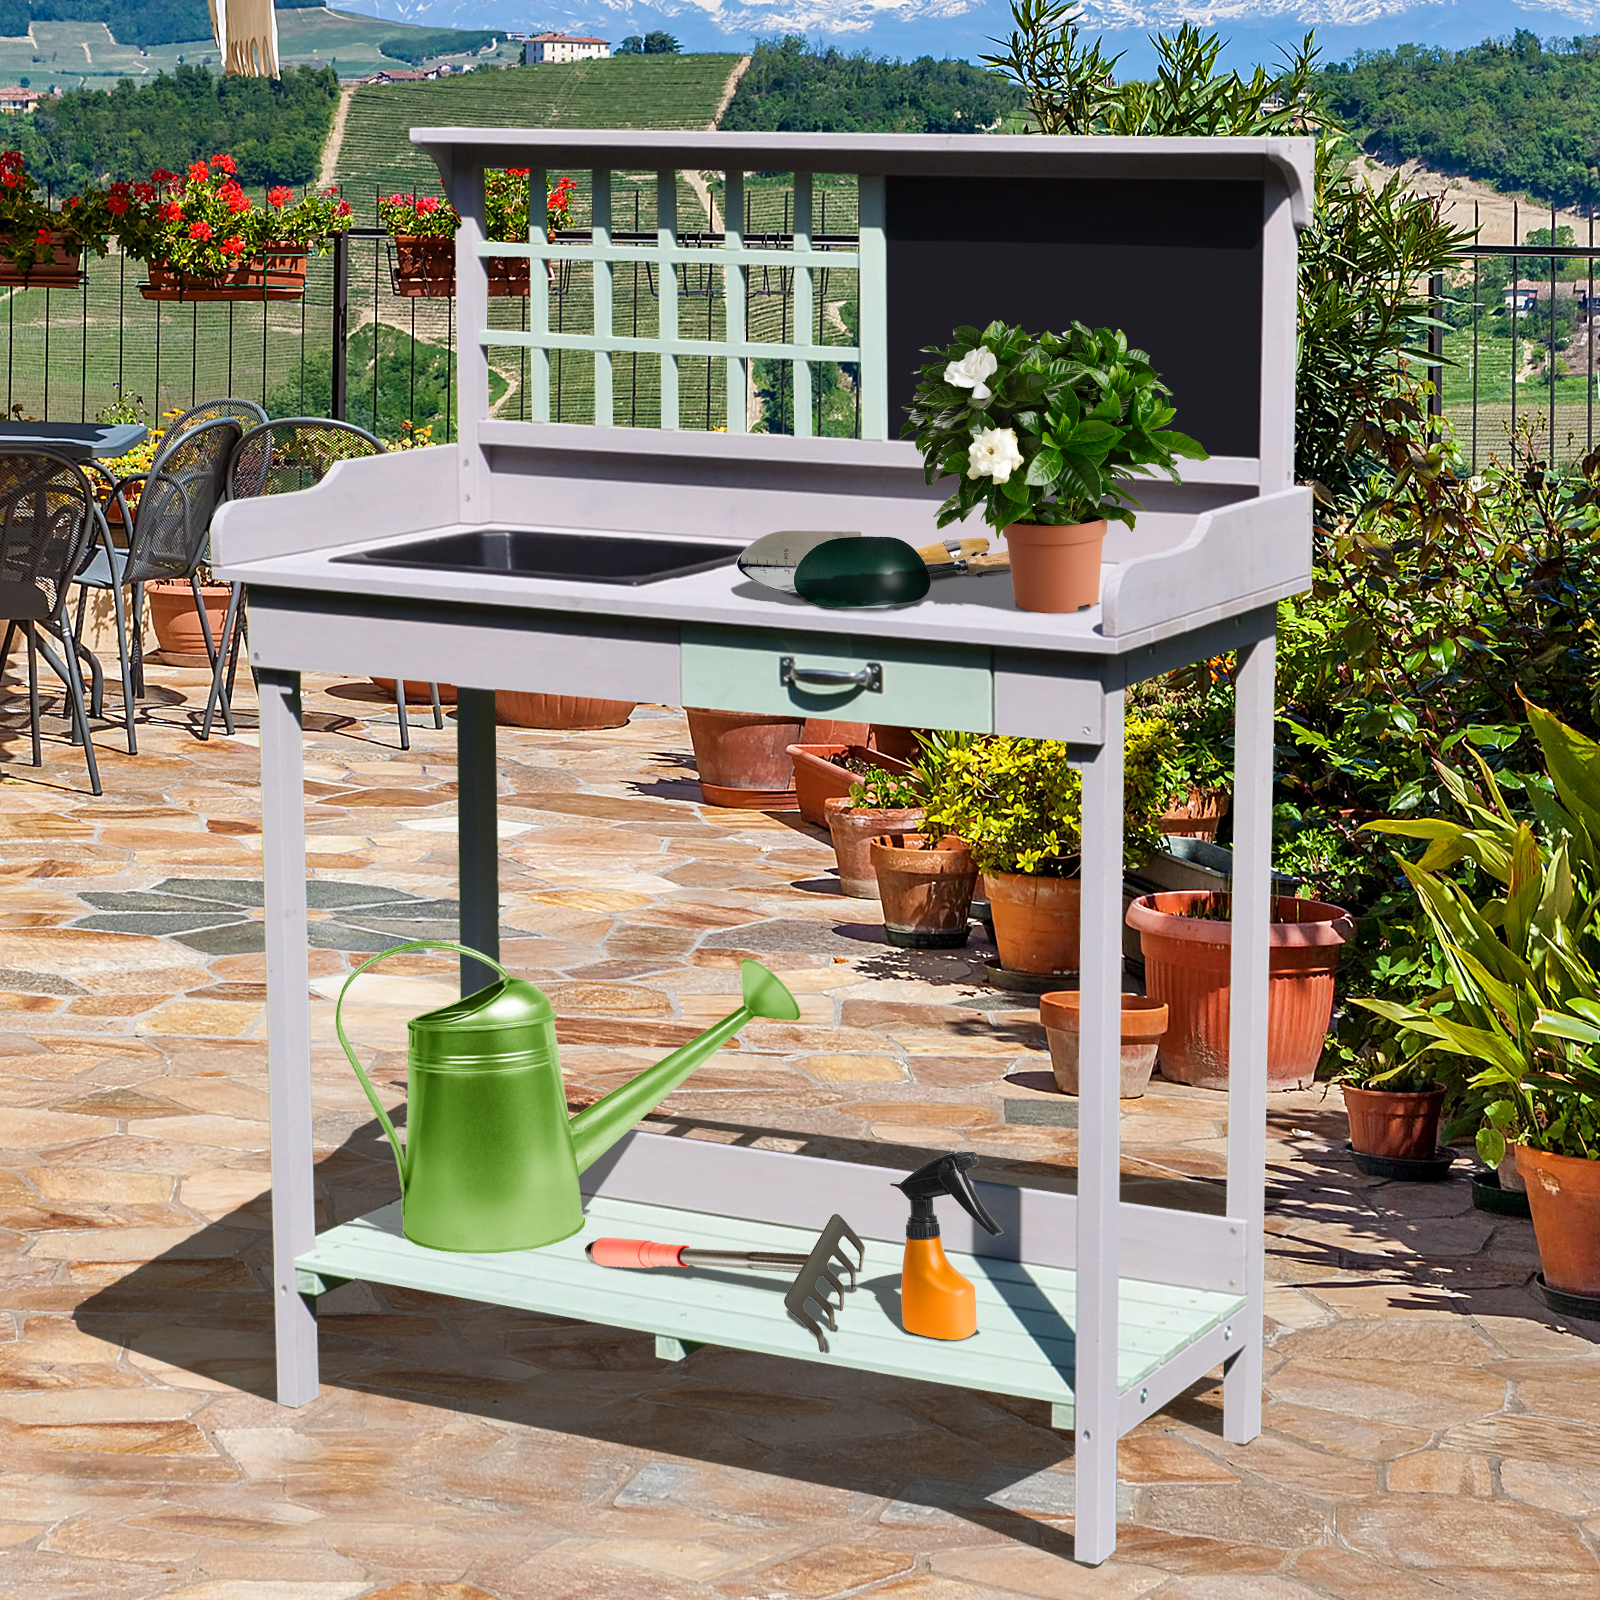 Astounding Details About Painted Wooden Garden Plant Table Potting Bench Workstation With Storage Caraccident5 Cool Chair Designs And Ideas Caraccident5Info